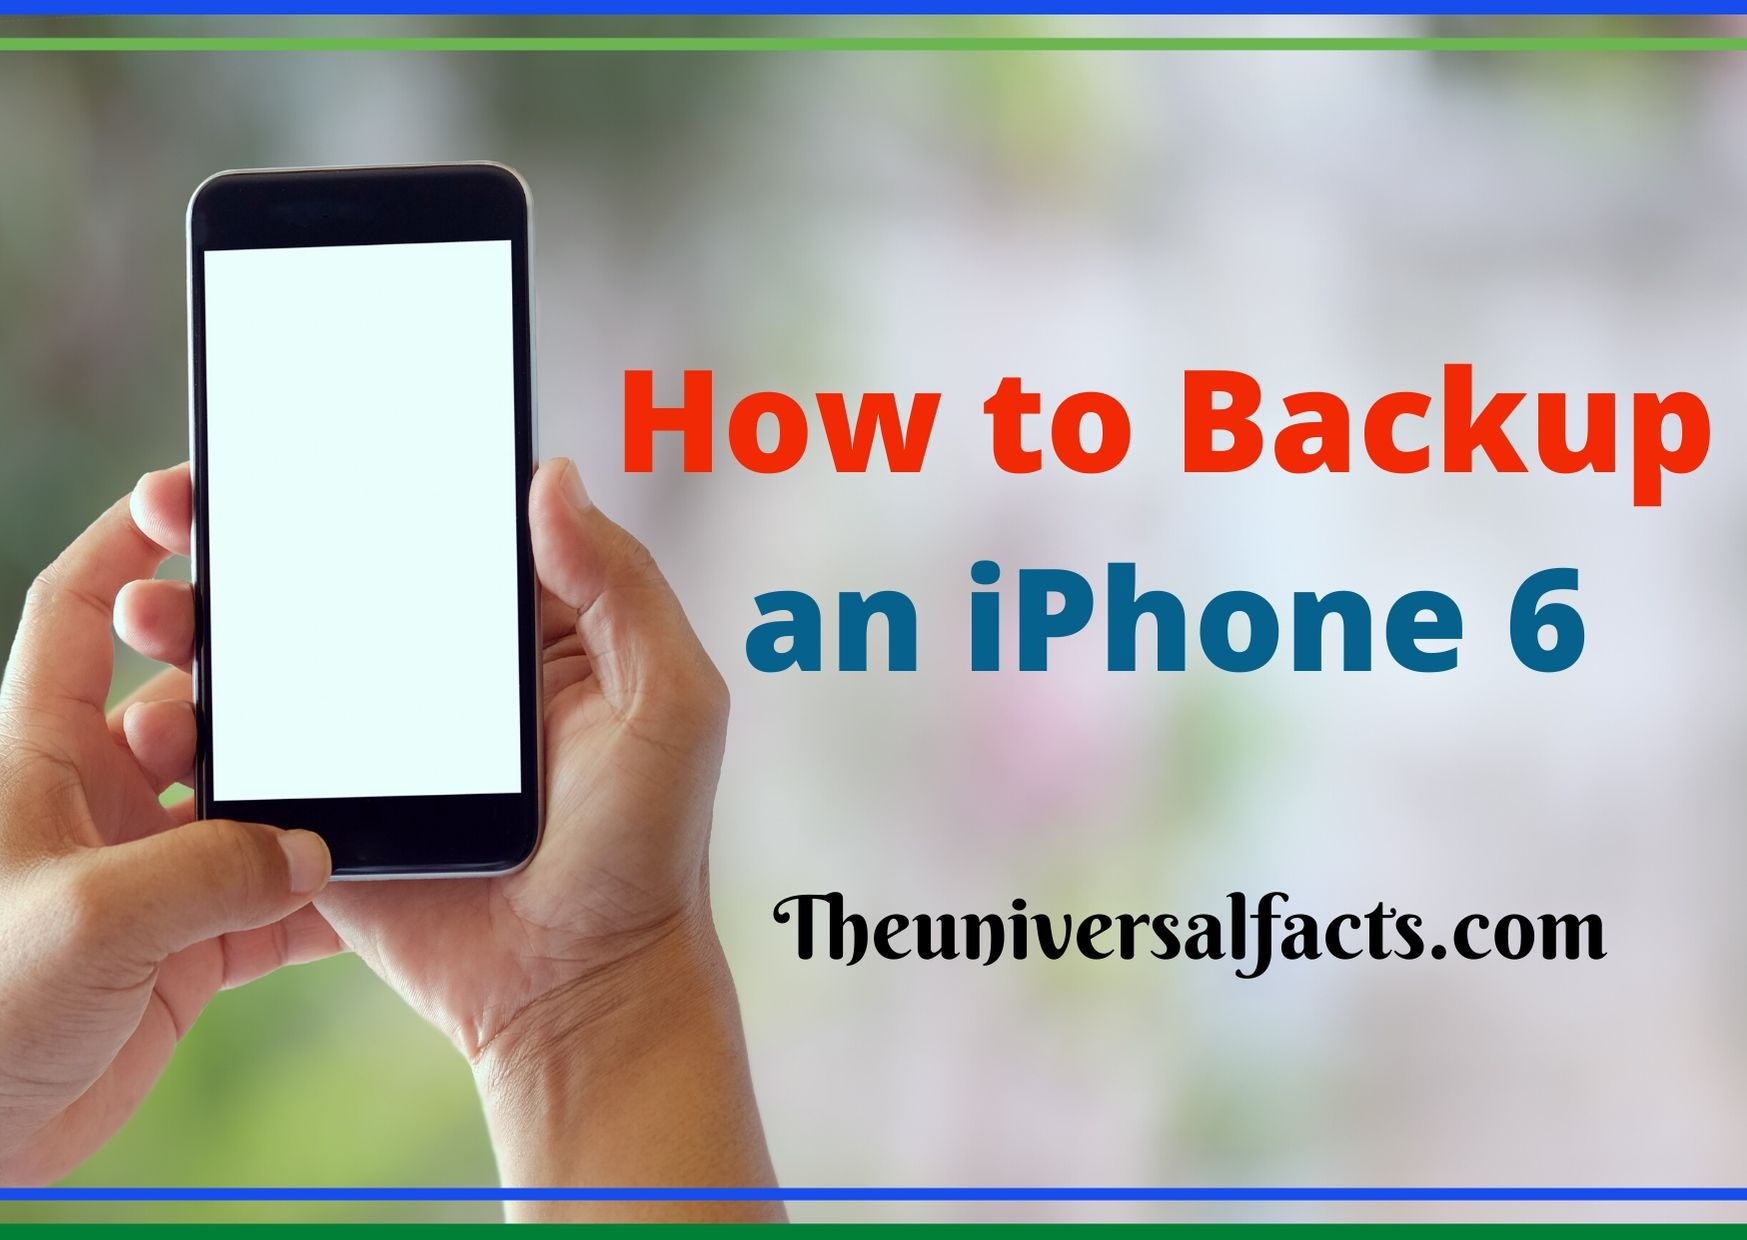 How to Backup an iPhone 6